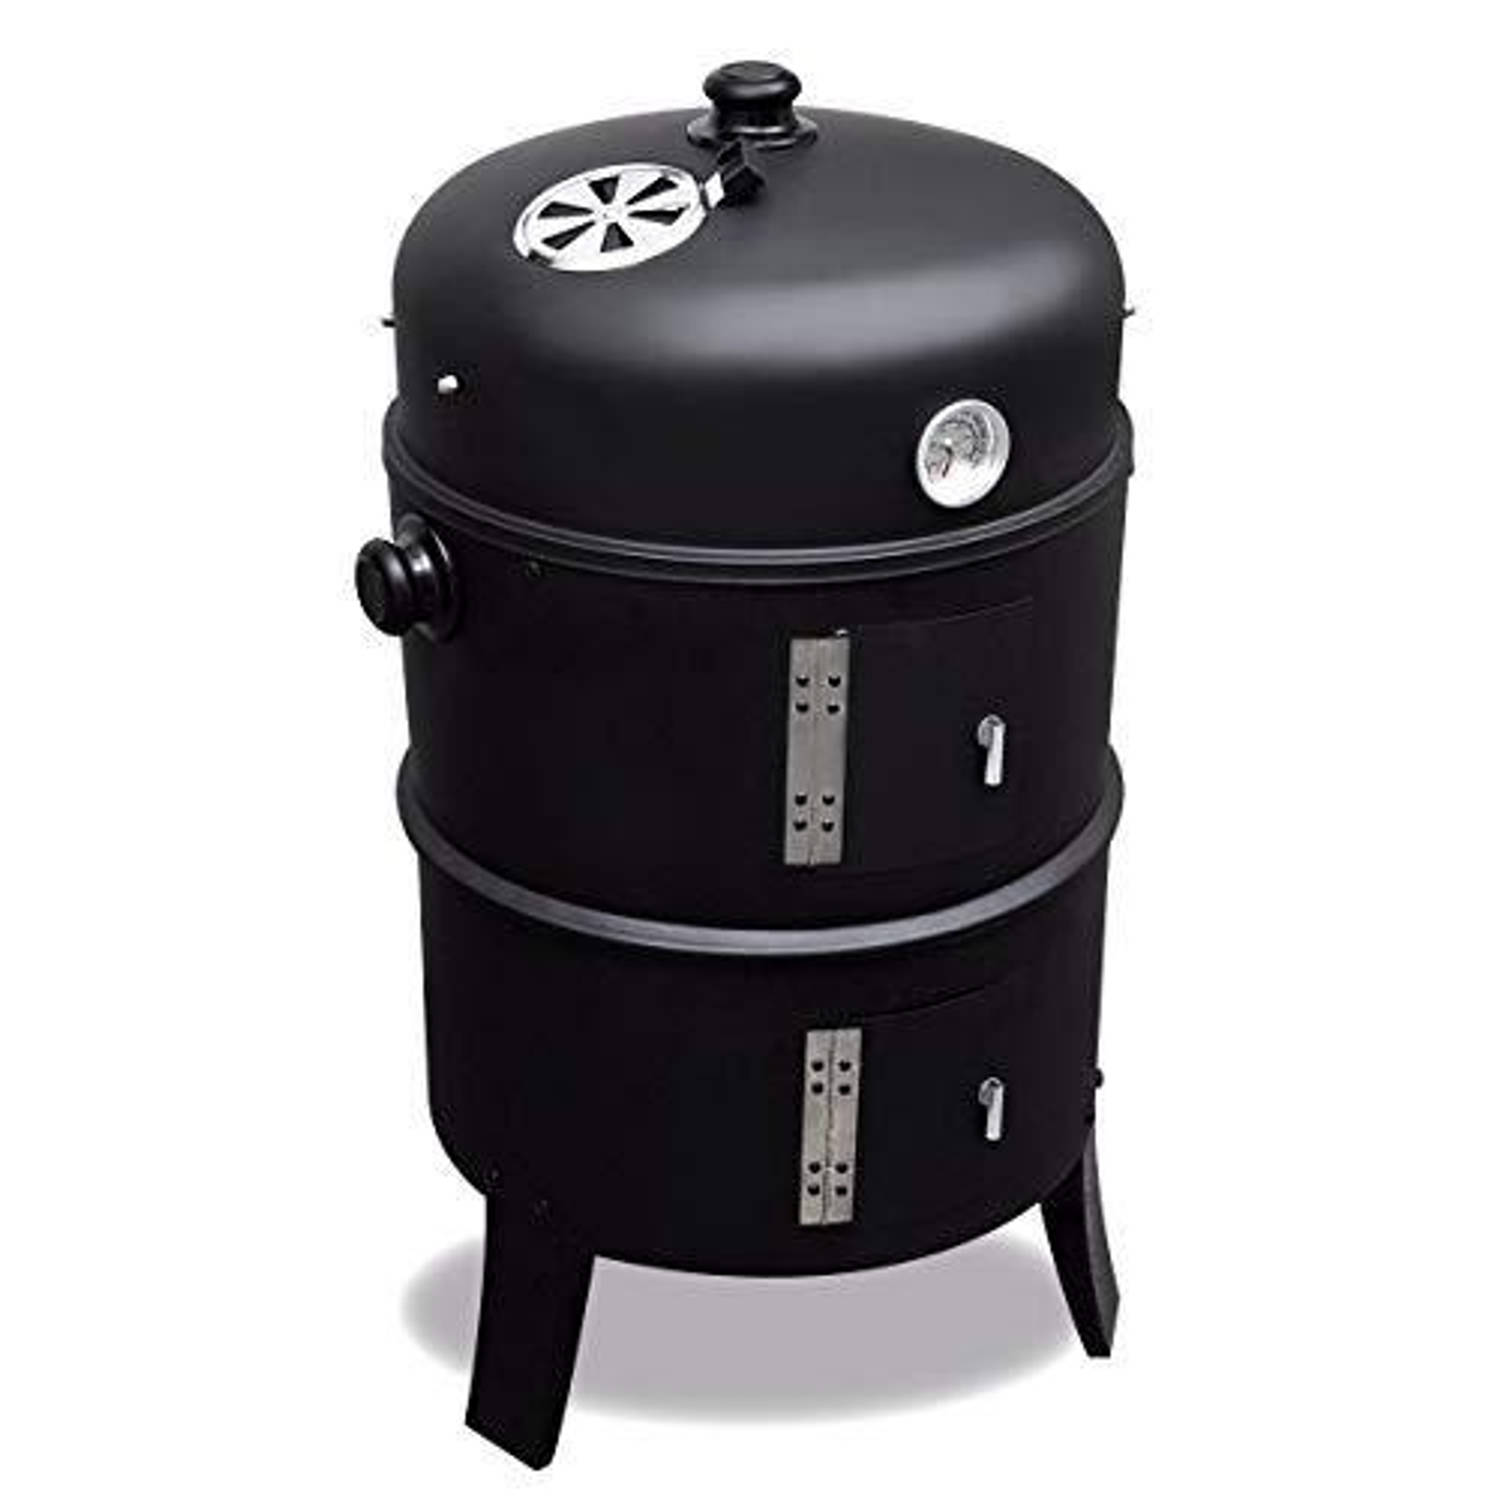 2 L Home Garden Black Smoker Rookoven 2 in 1 Zwart